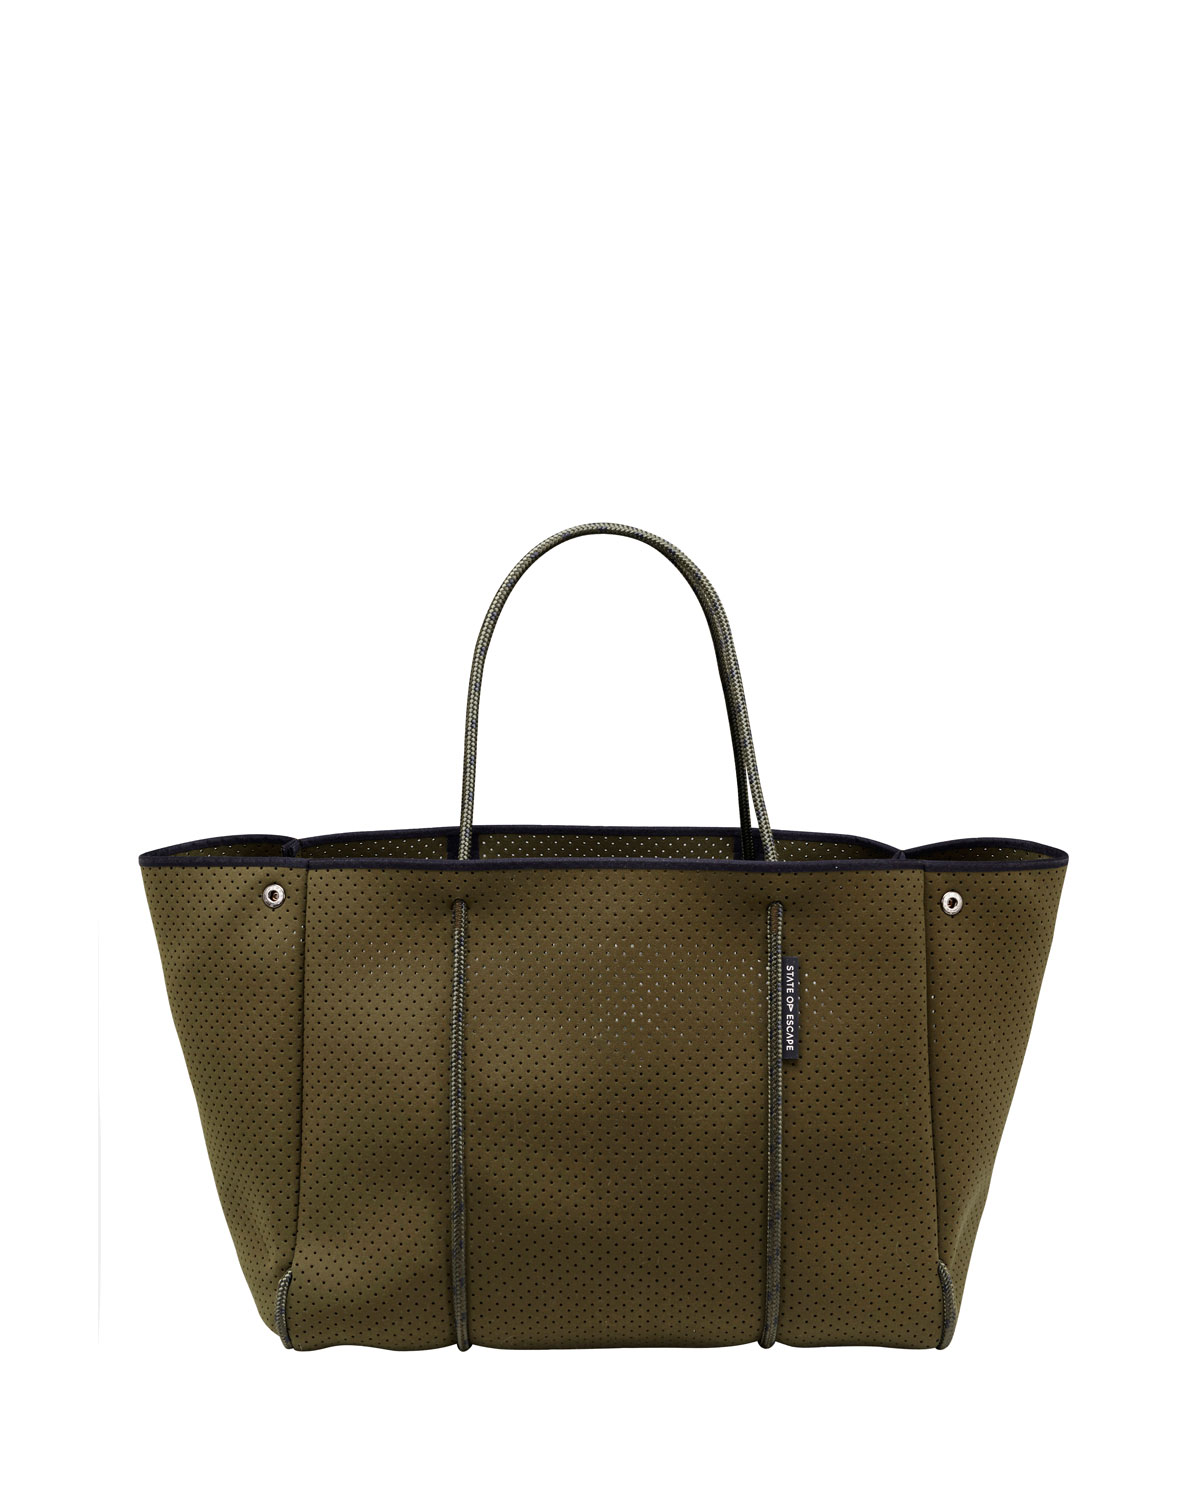 Escape Perforated Tote Bag, Khaki